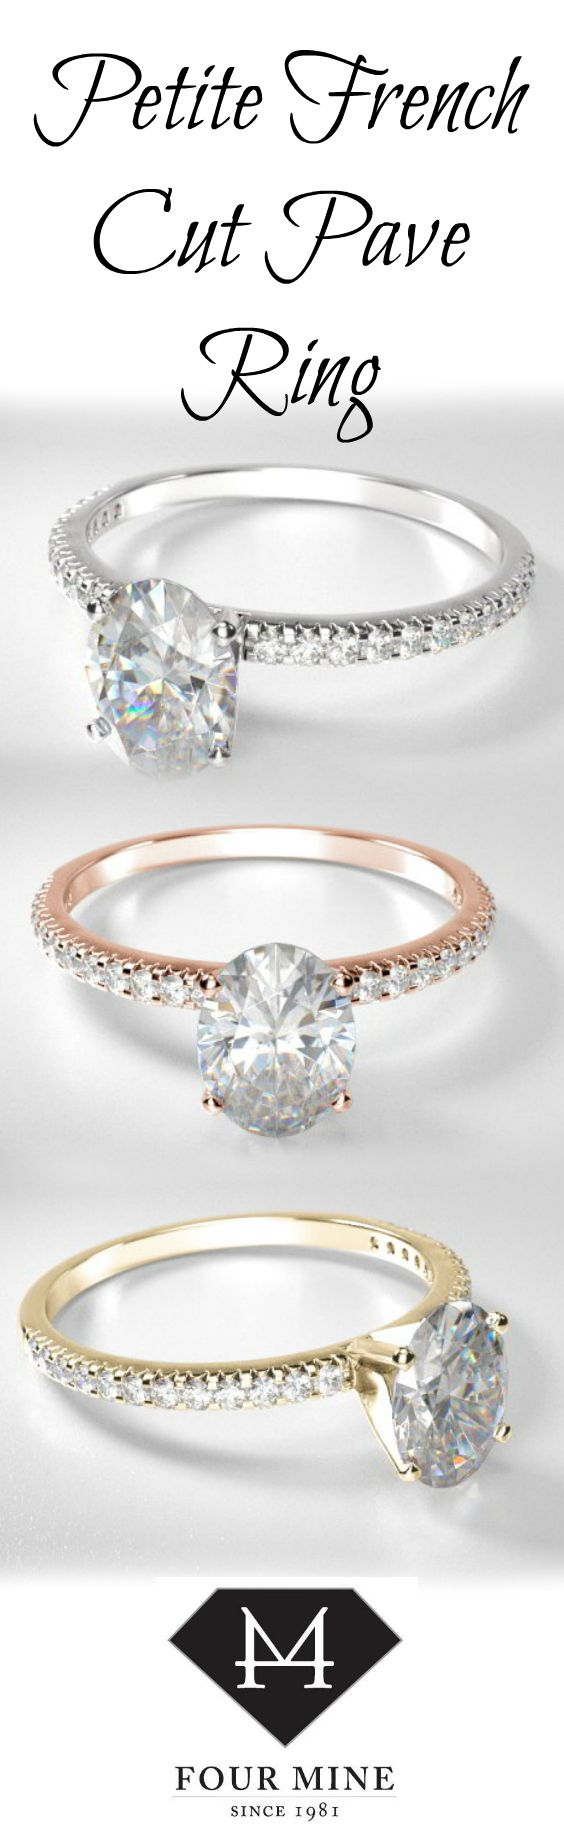 expensive engagement style designer trendy rings tacori and french keeping